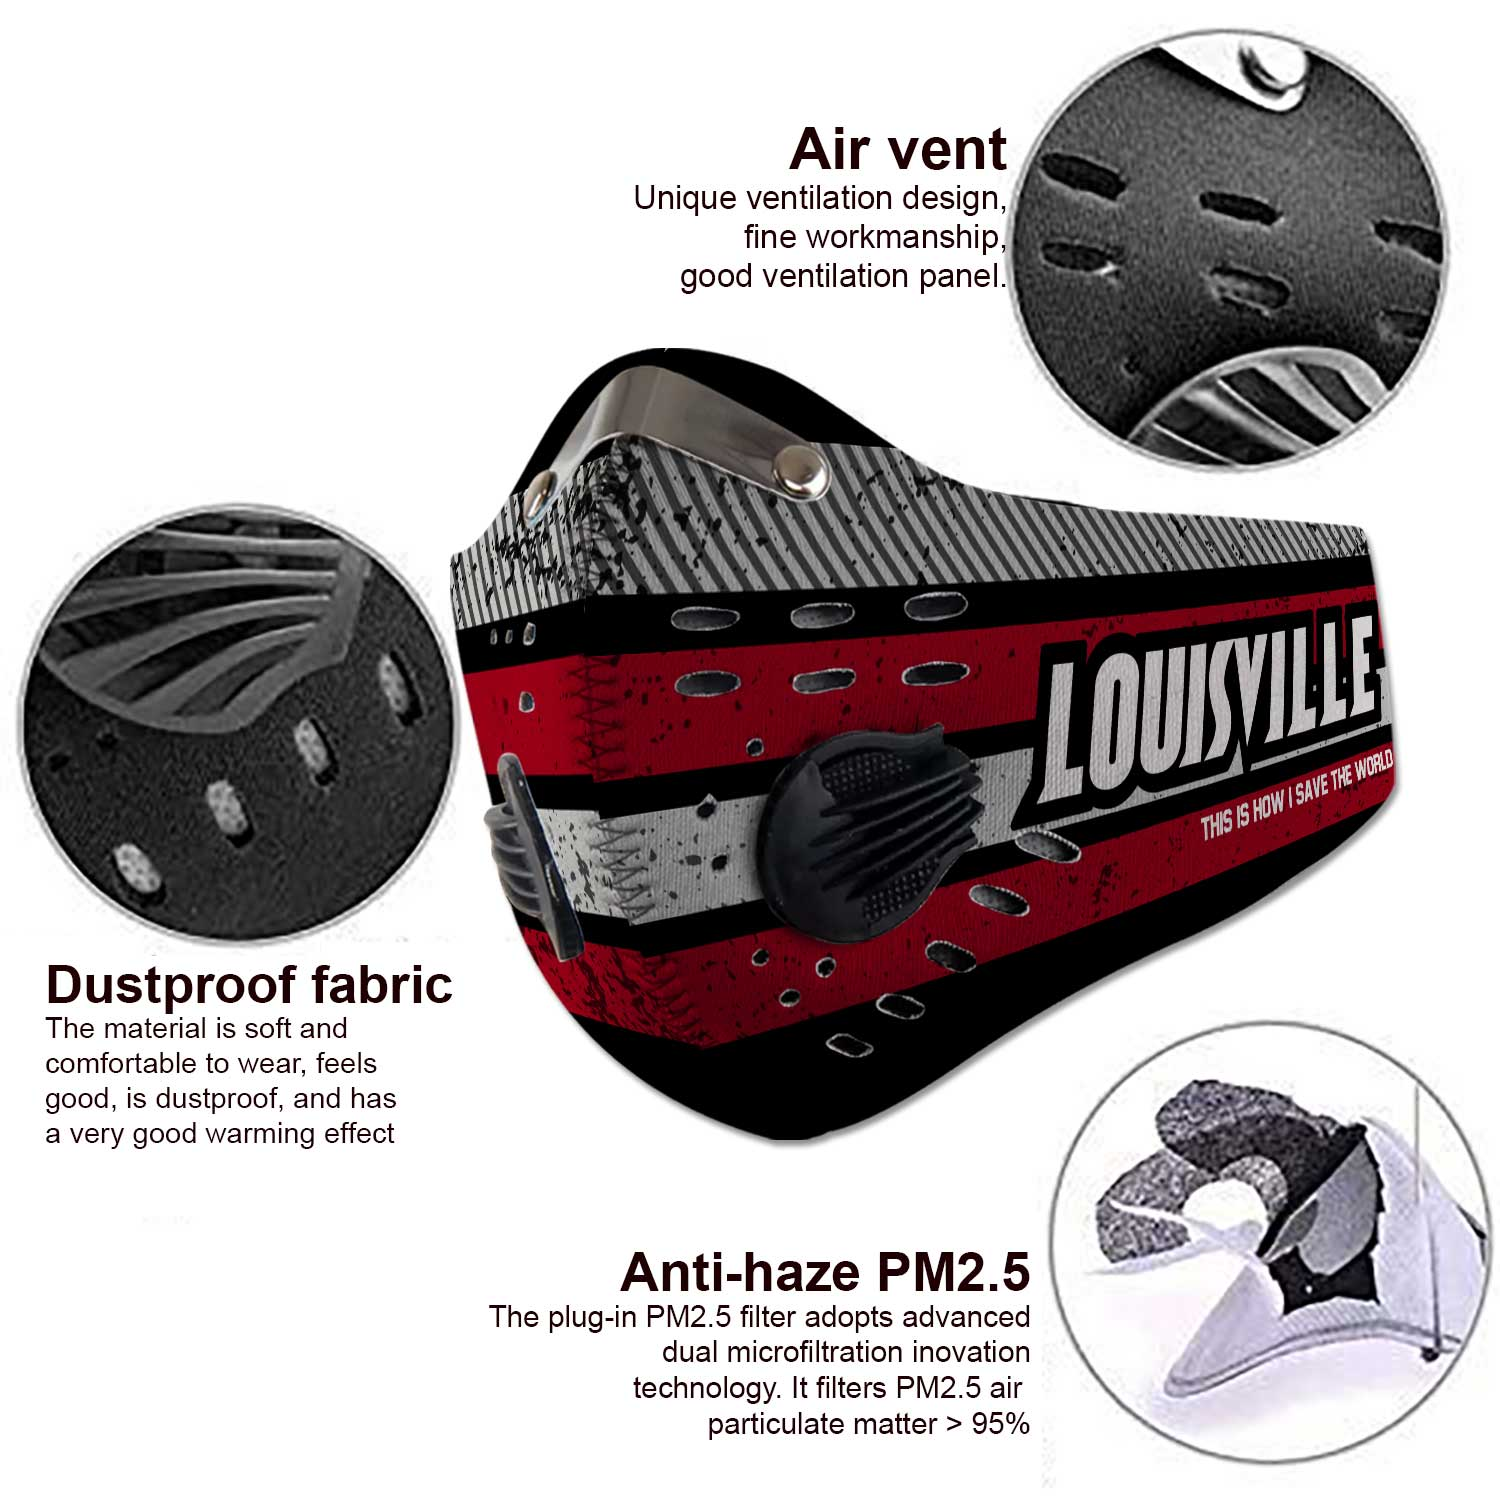 Louisville cardinals this is how i save the world carbon filter face mask 4